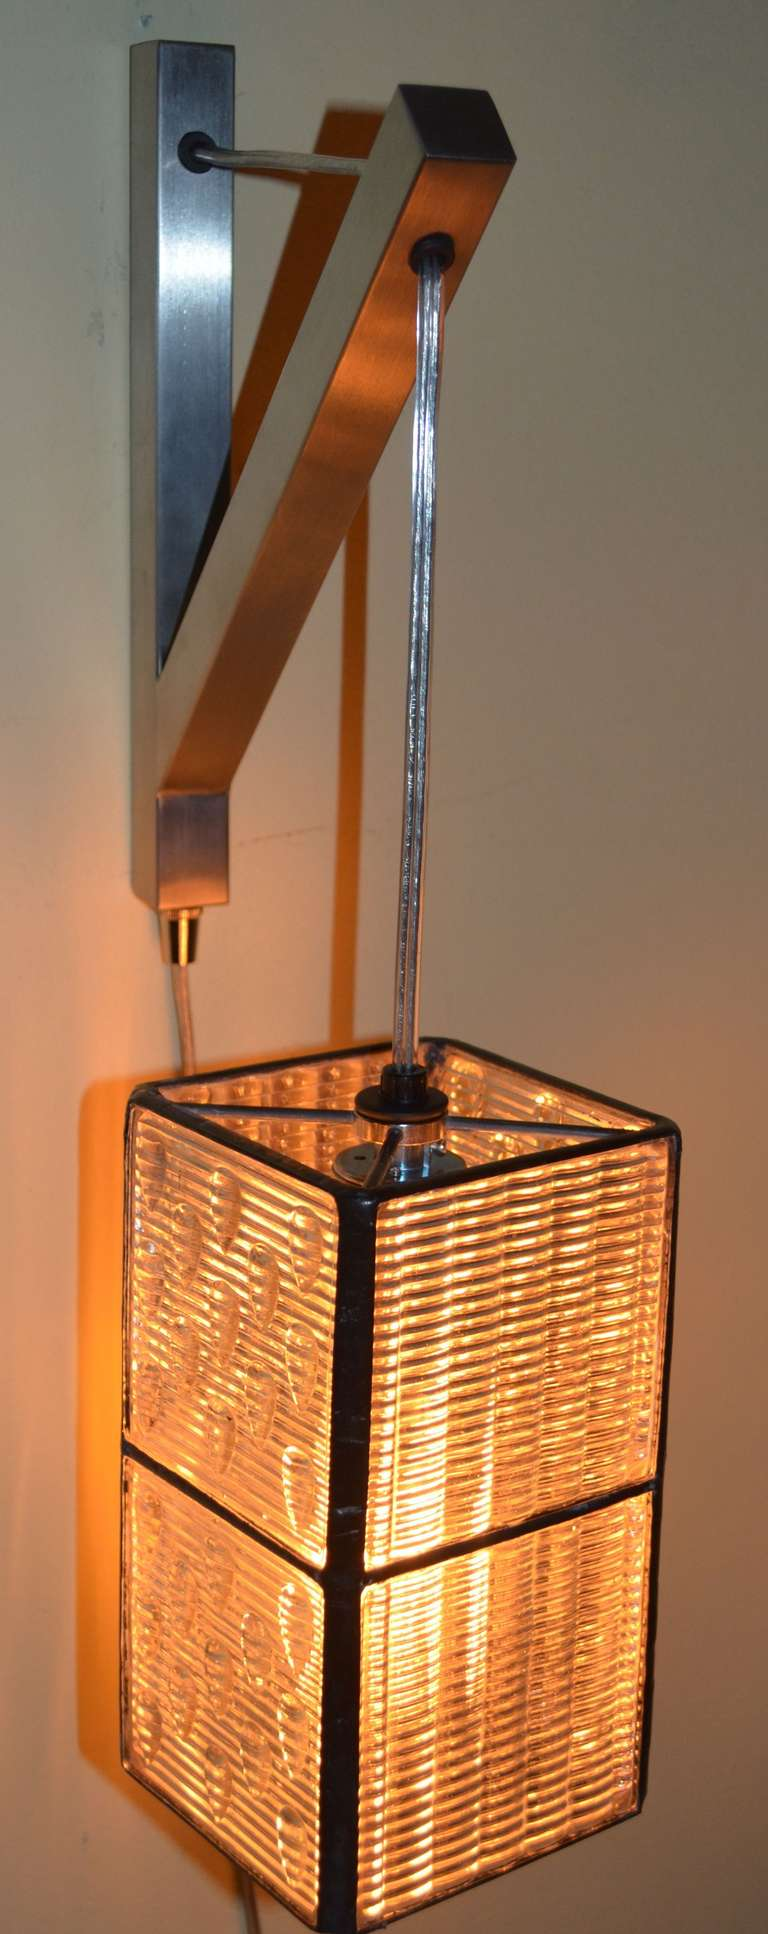 Hanging Lamps That Plug Into Wall : Luxfer Prism Tiles made into Wall Plug-In Pendant Light at 1stdibs